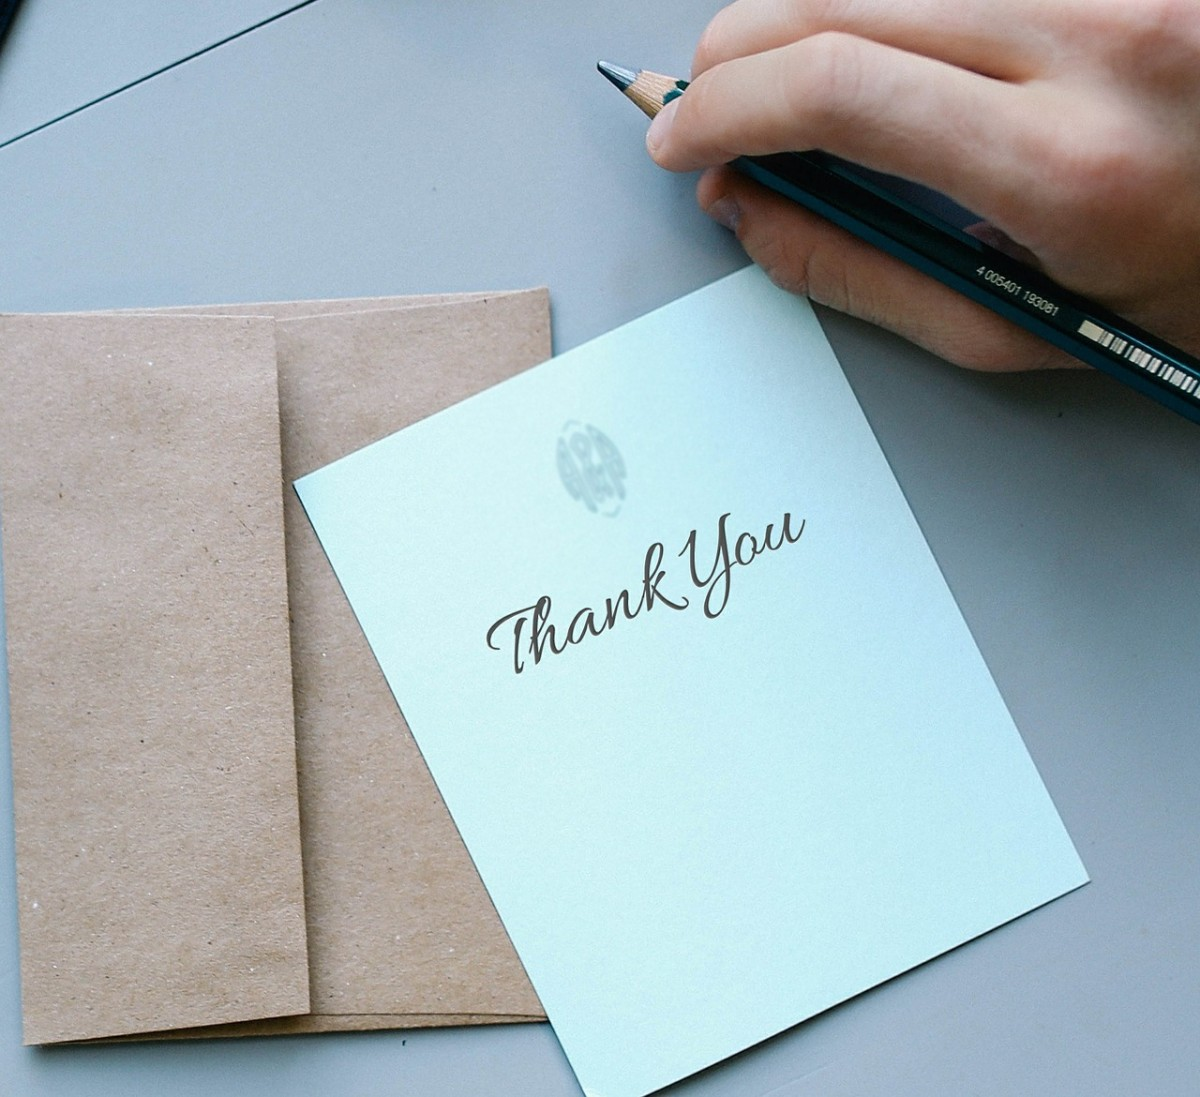 Sending a thank you card when someone does something nice for you is essential. Sending one, out of the blue and 'just because' is especially nice.